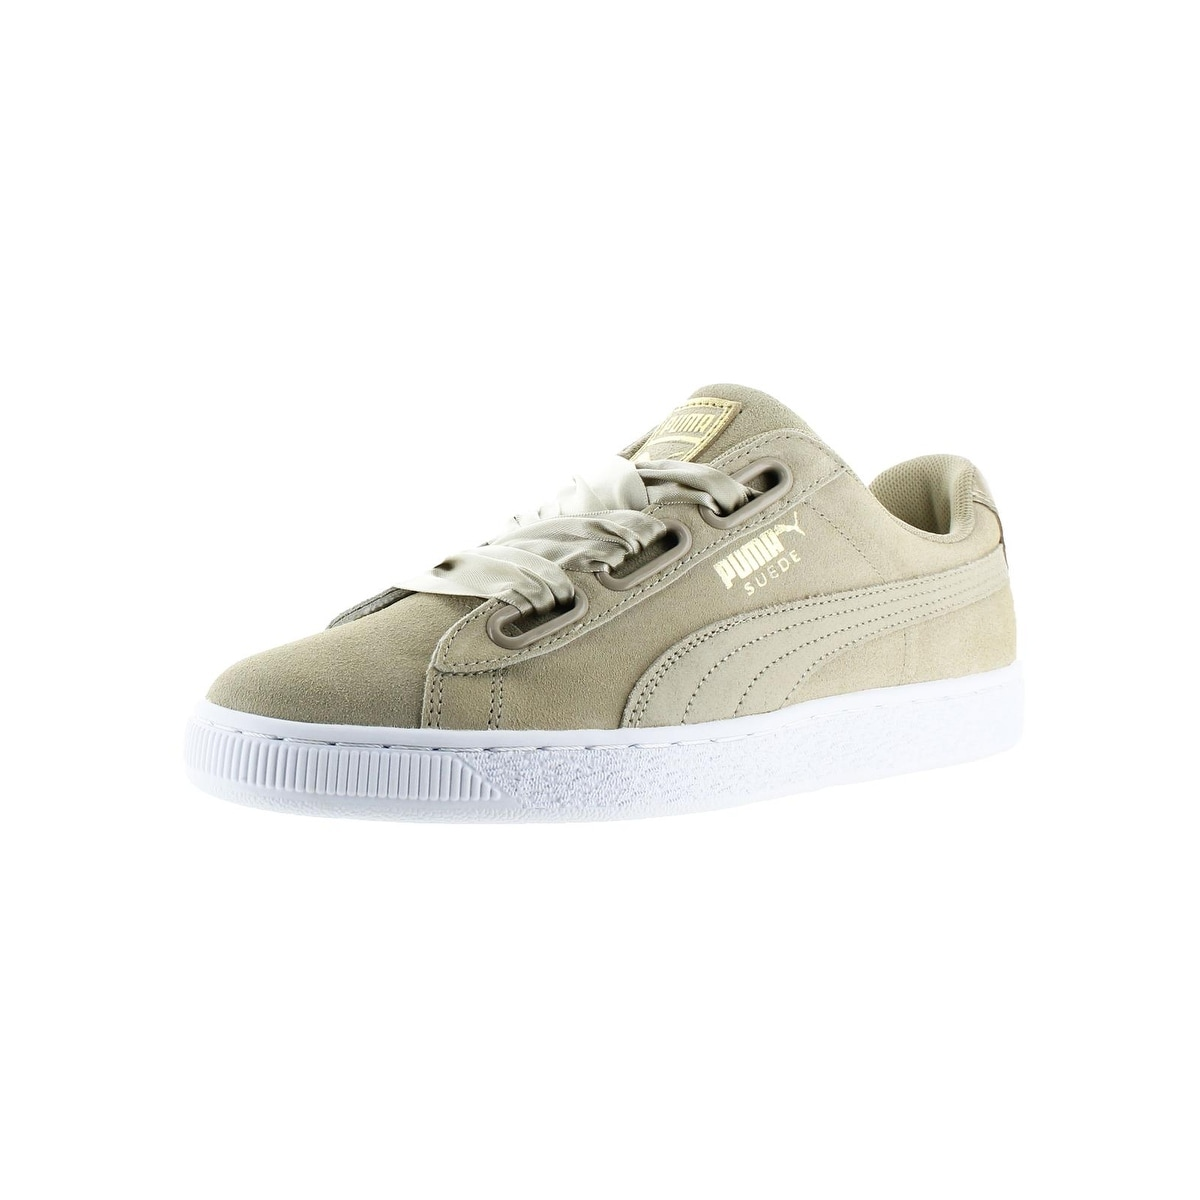 new style 2c46a 72ed3 Puma Womens Suede Heart Safari Fashion Sneakers Low Top Casual